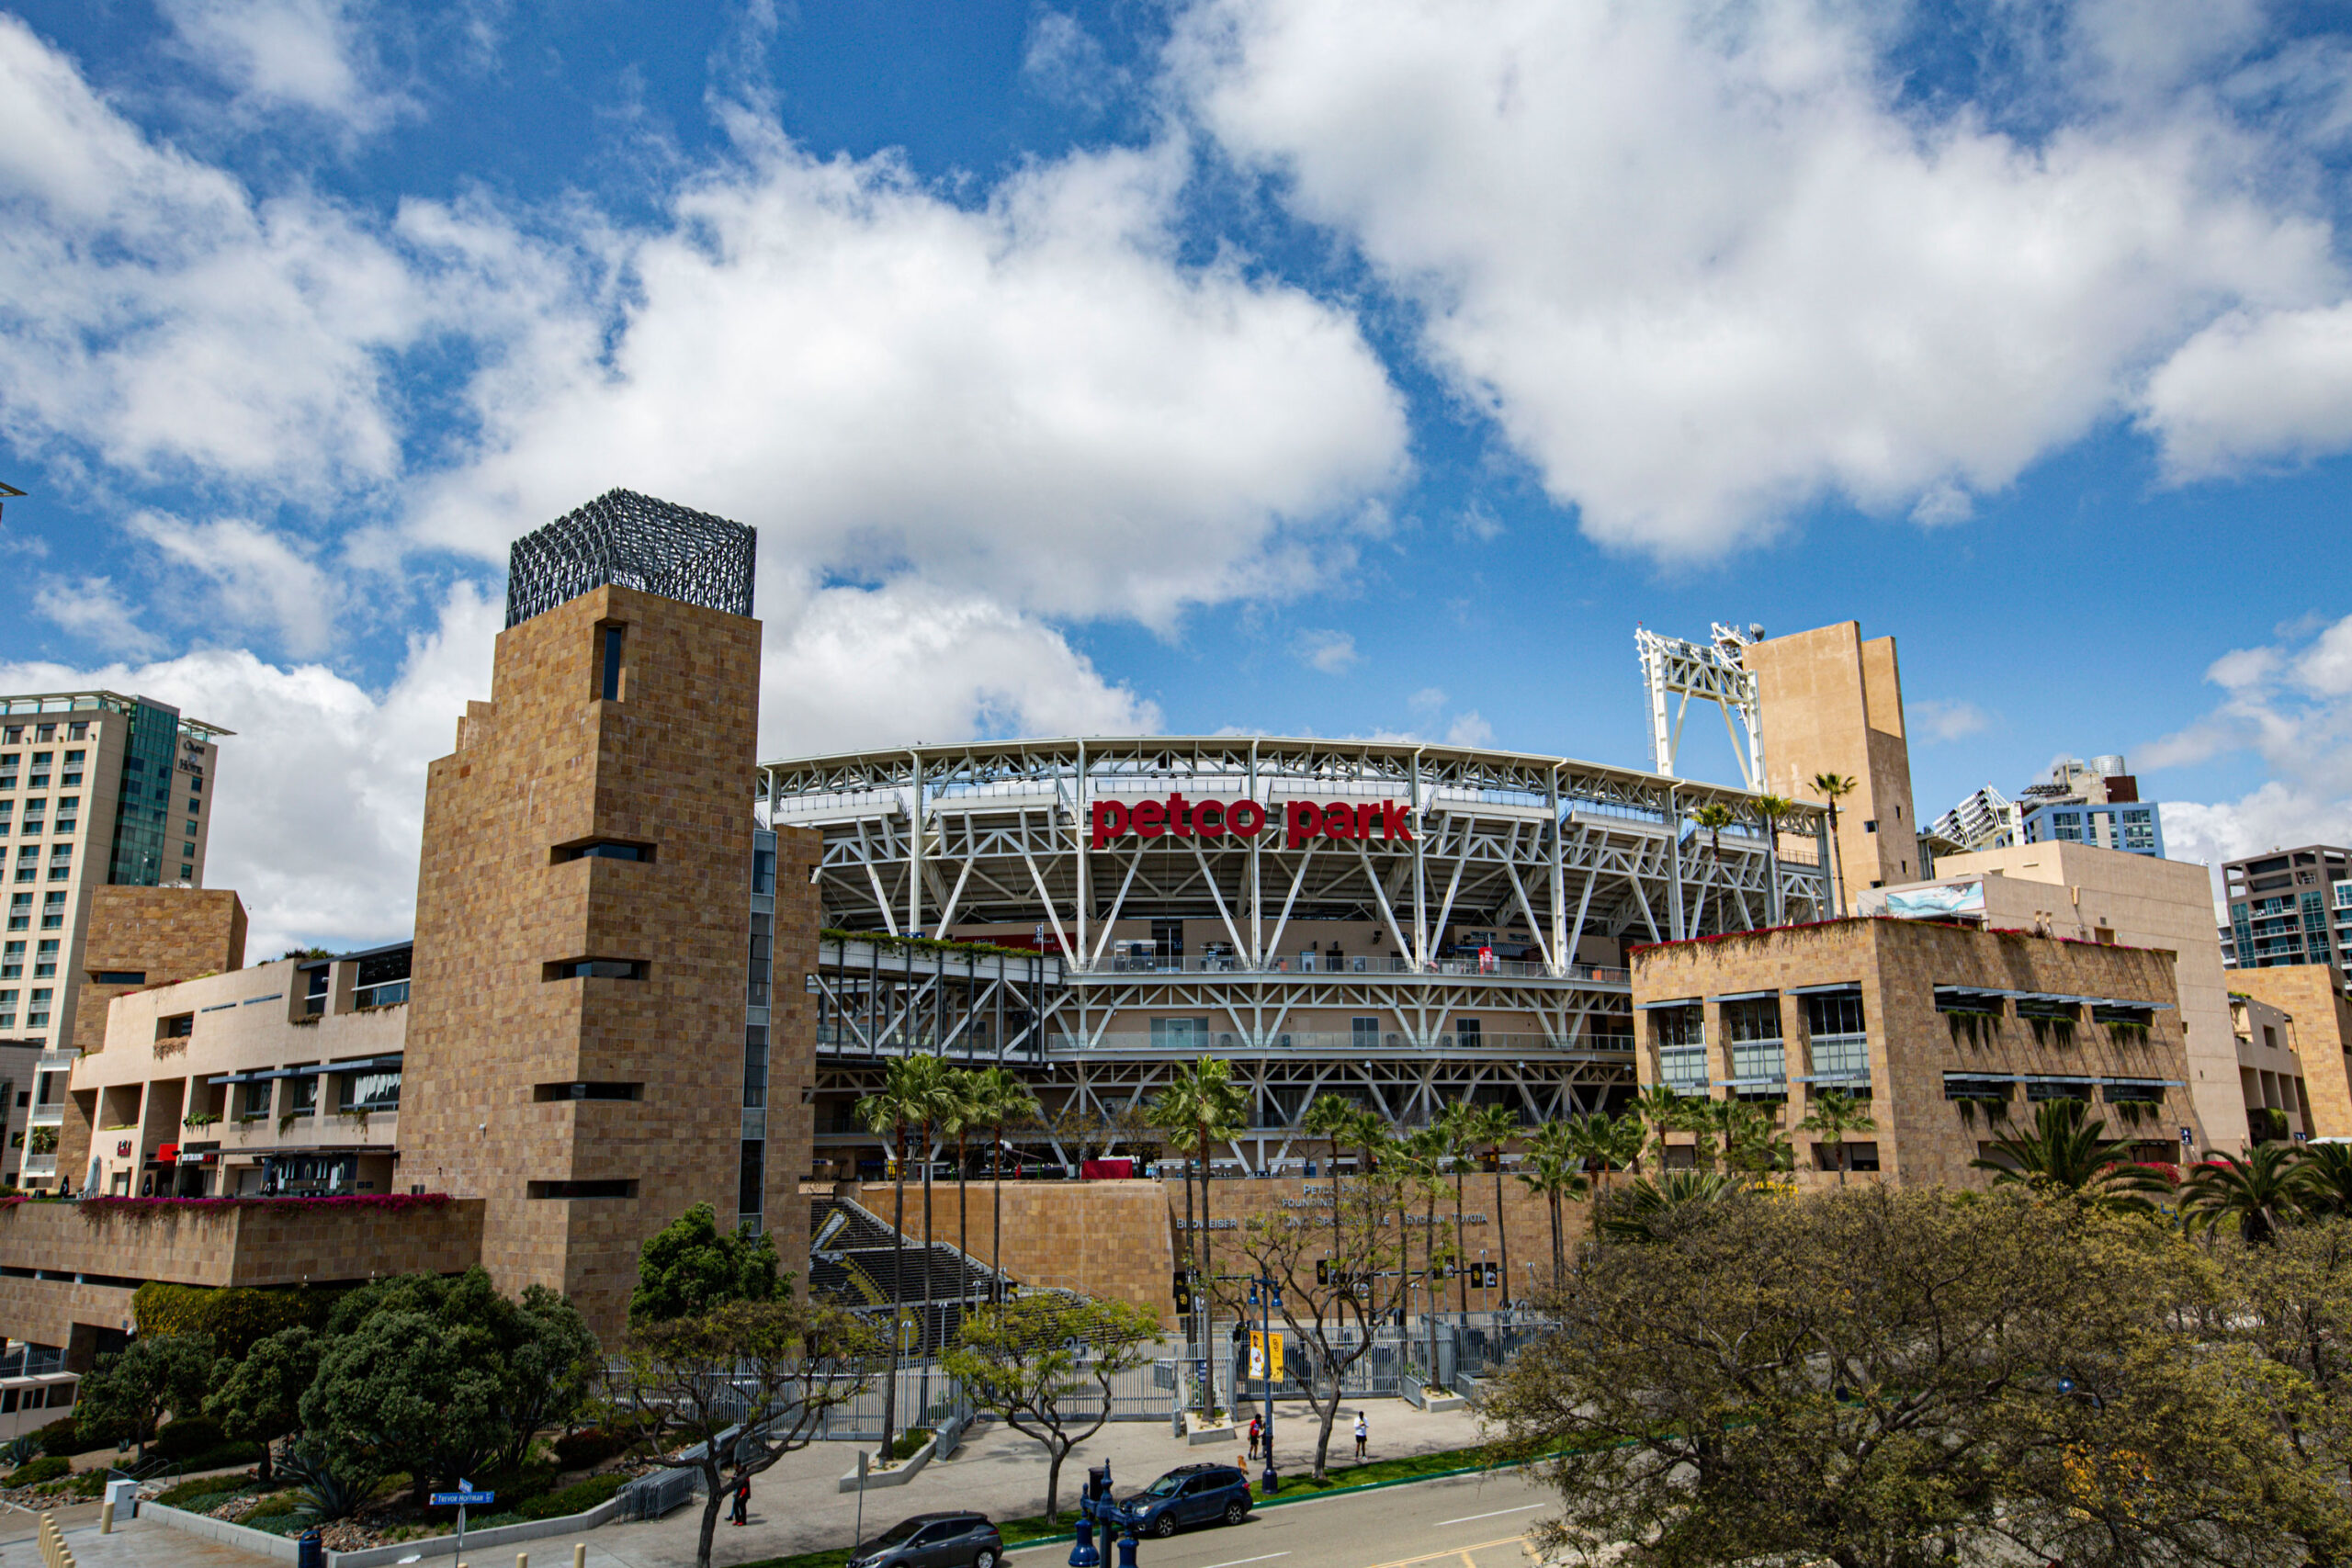 General view outside Petco Park in San Diego, California, where the Padres play baseball.